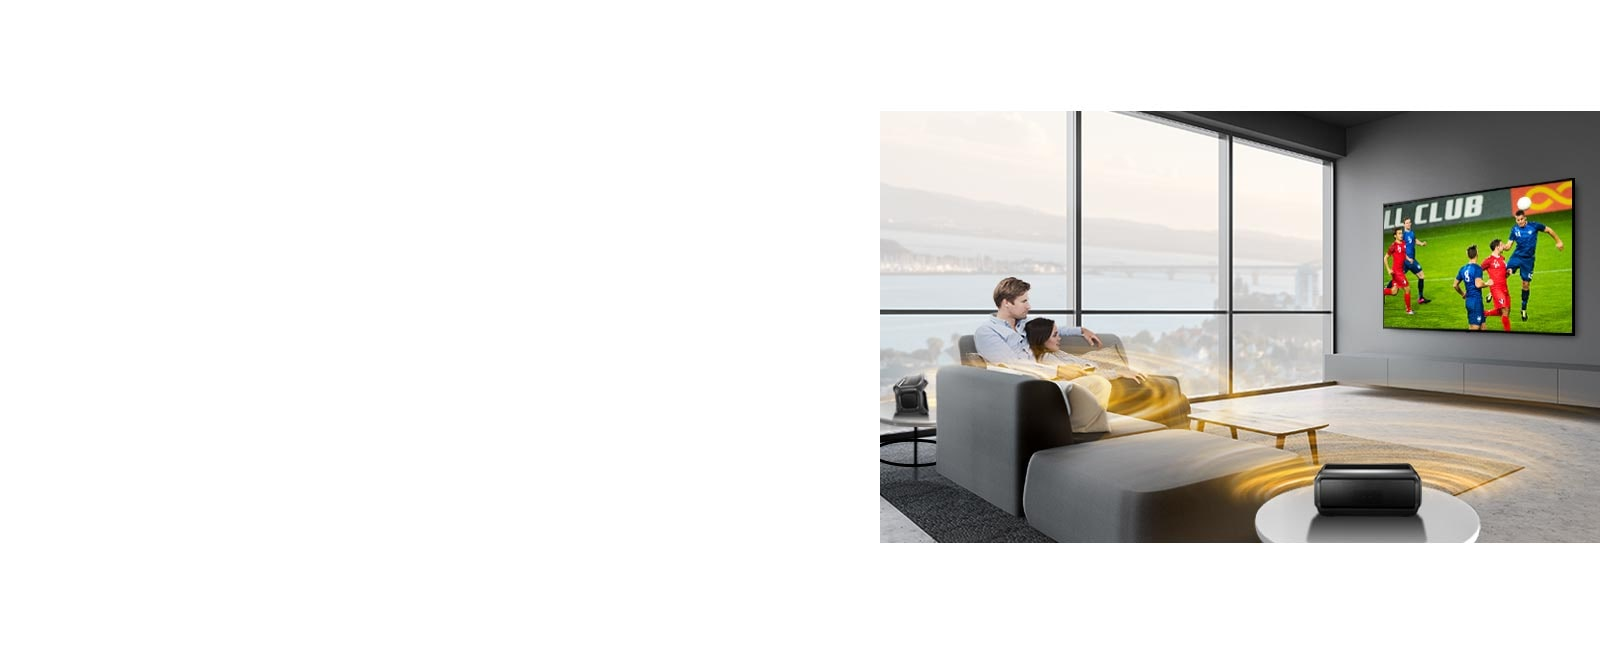 A man and women watching sports game on TV in the living room with Bluetooth rear speakers